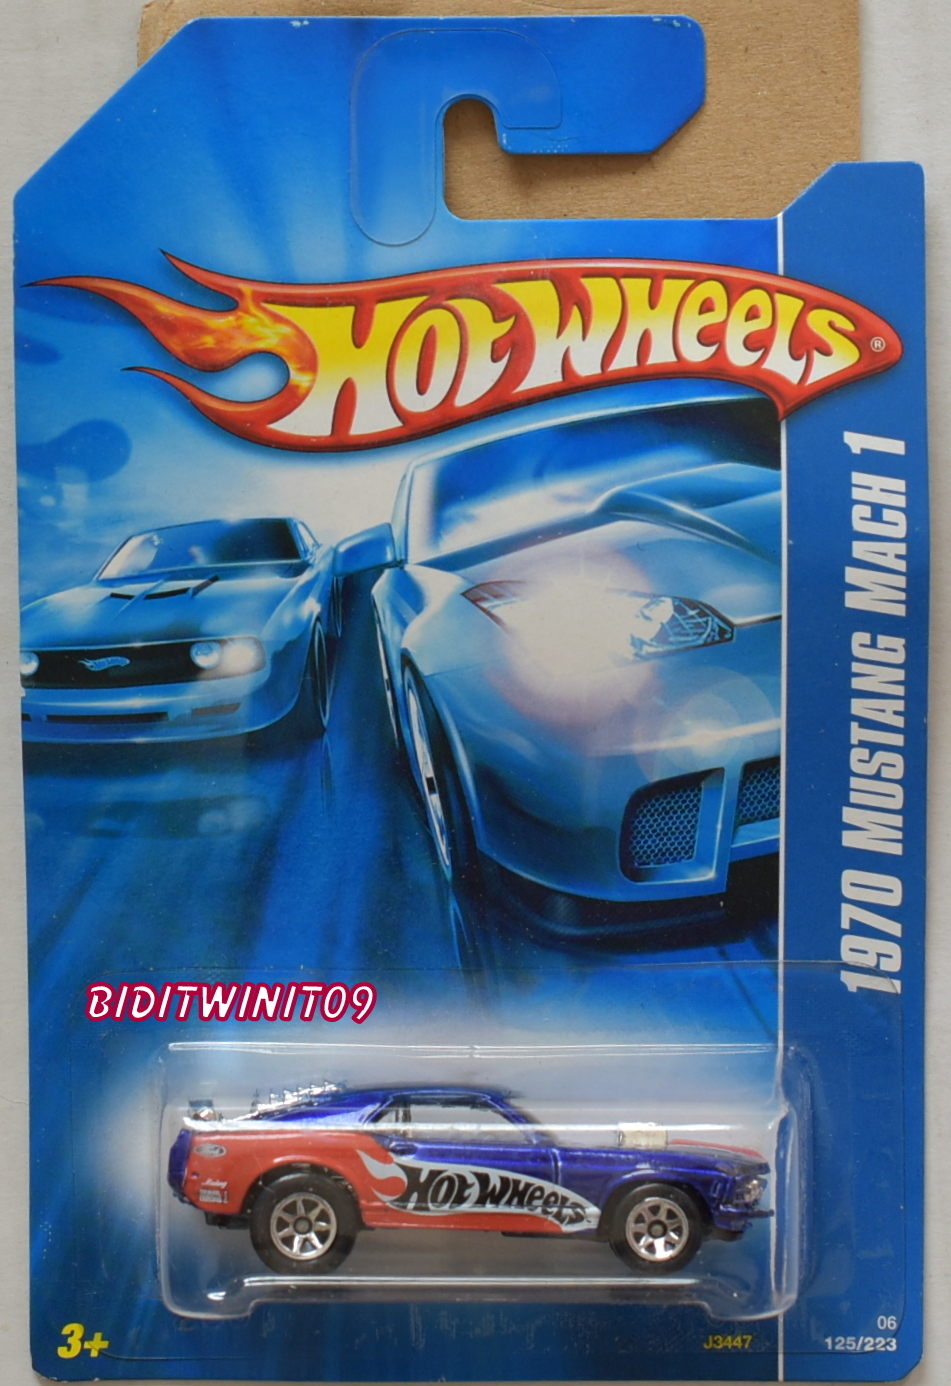 HOT WHEELS 2006 1970 MUSTANG MACH 1 BLUE